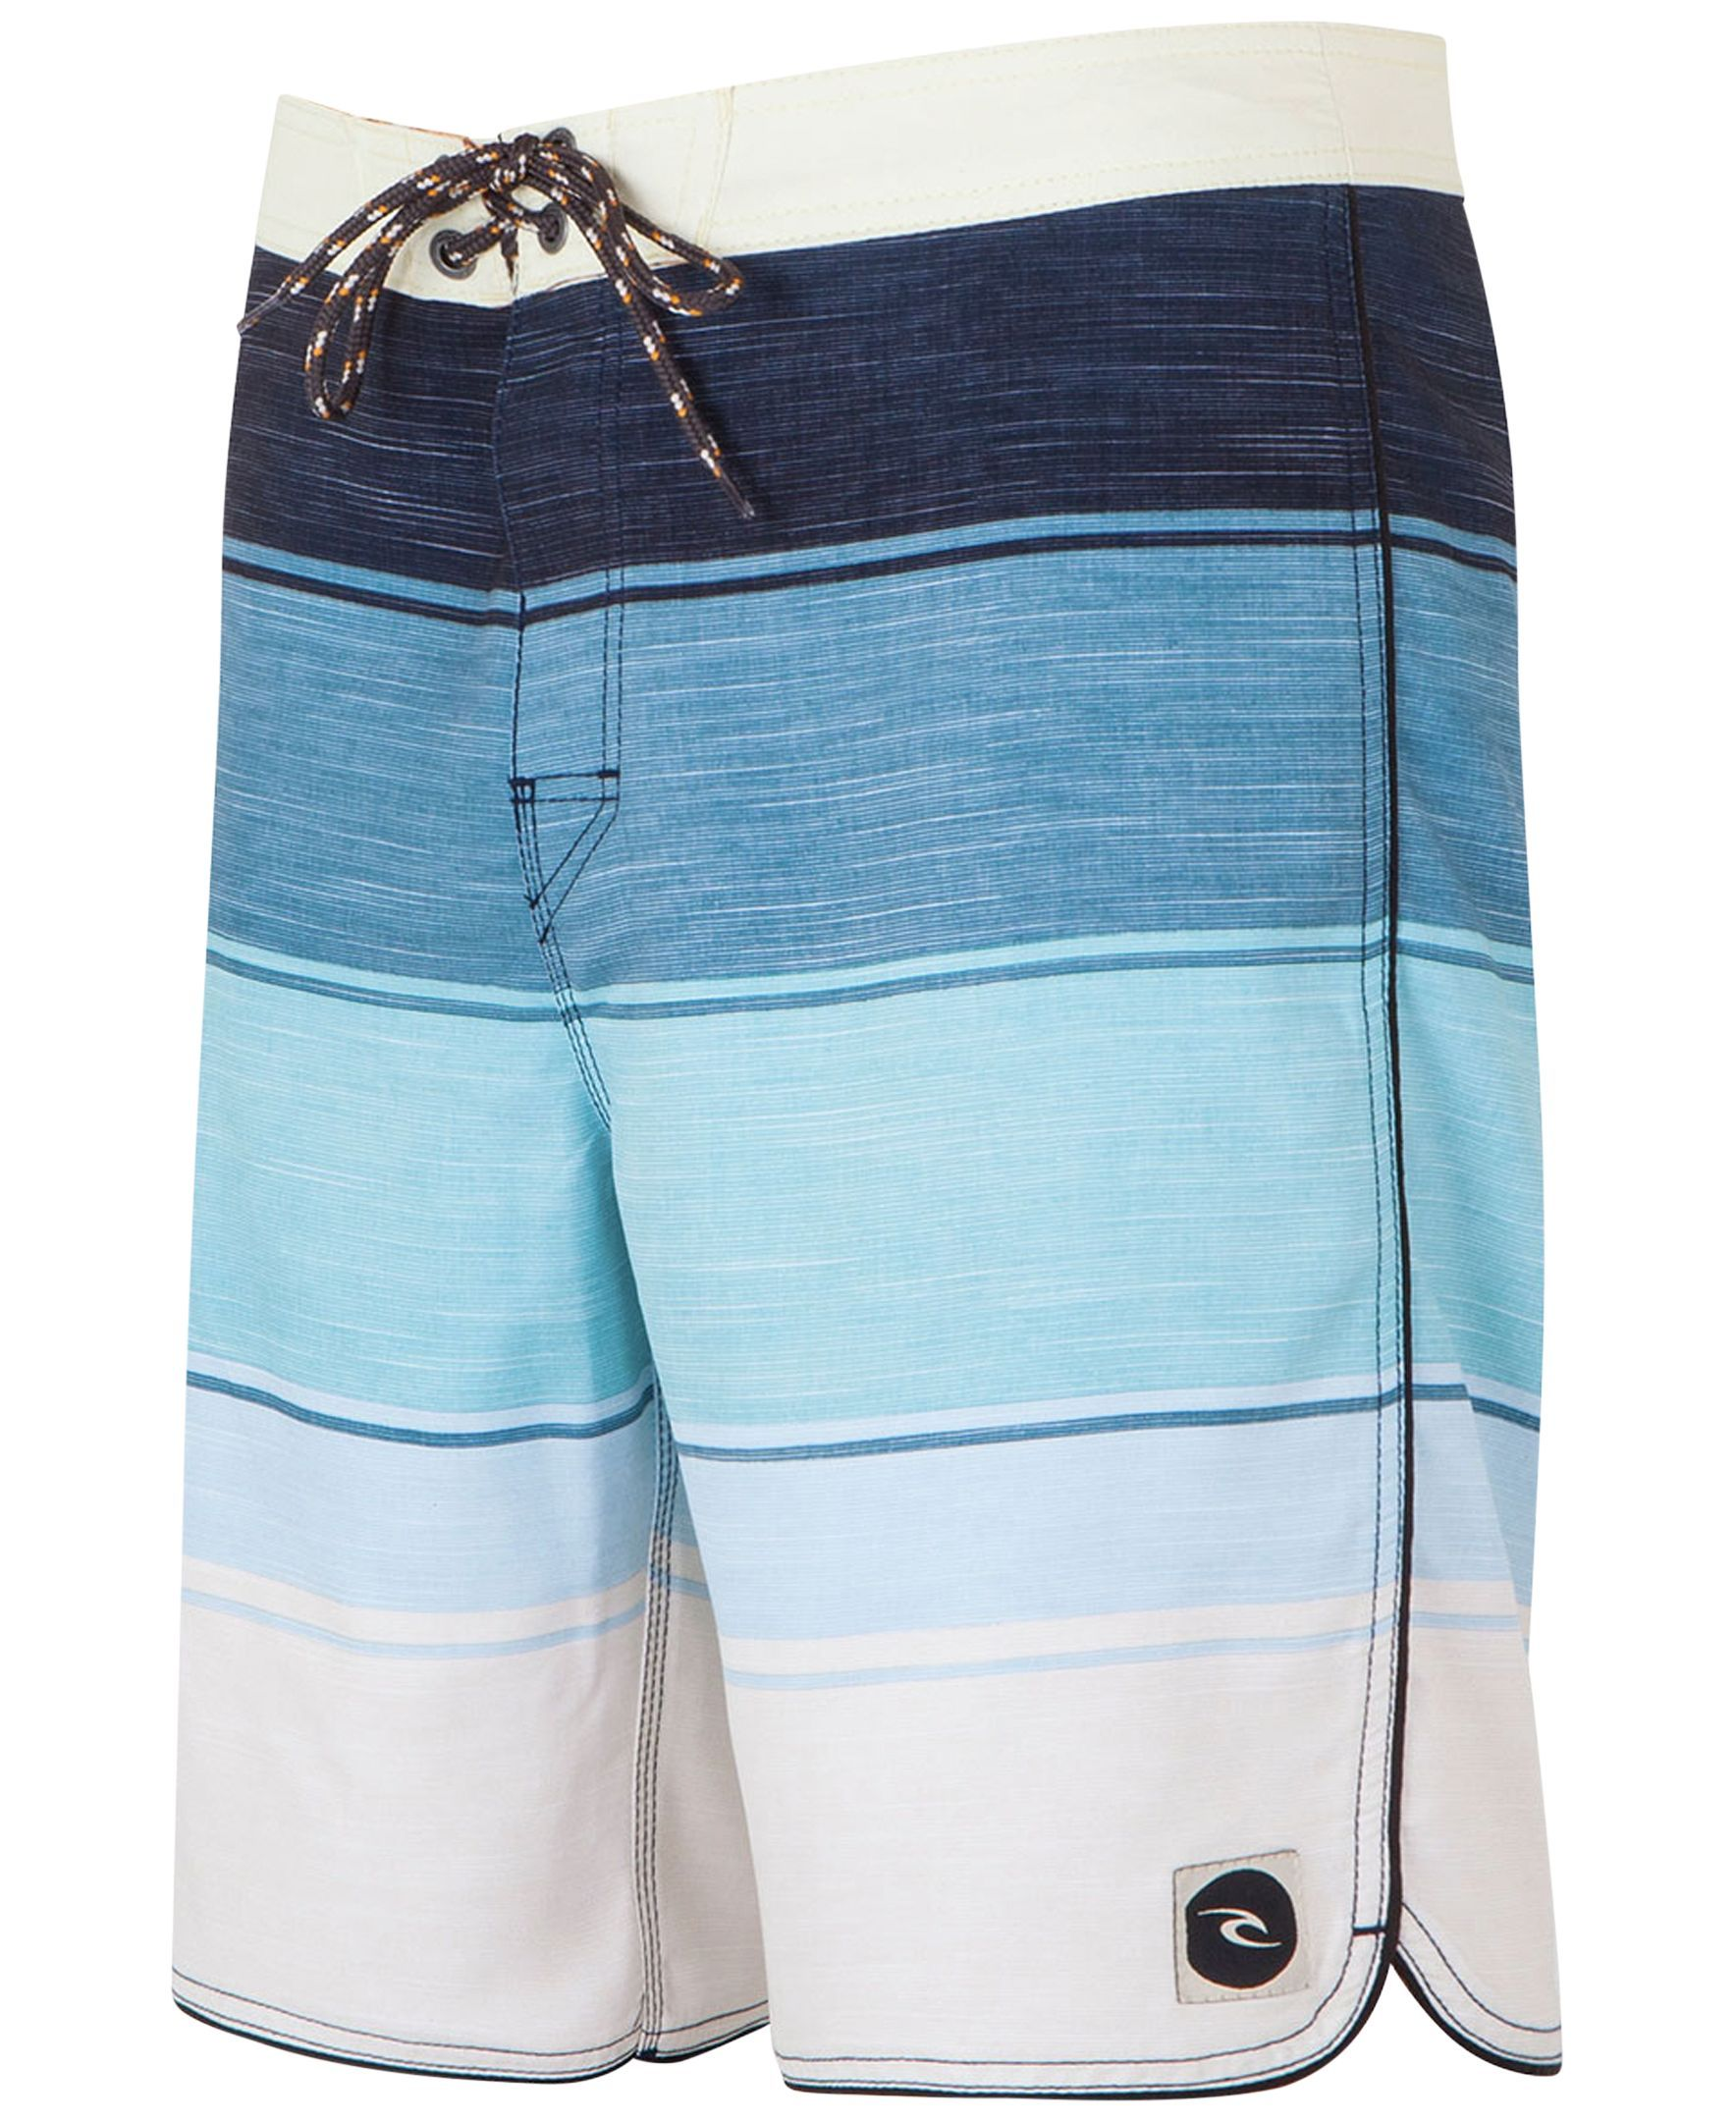 5a80101ccc Rip Curl All Time Board Shorts | Board of Board-shorts! | Shorts ...